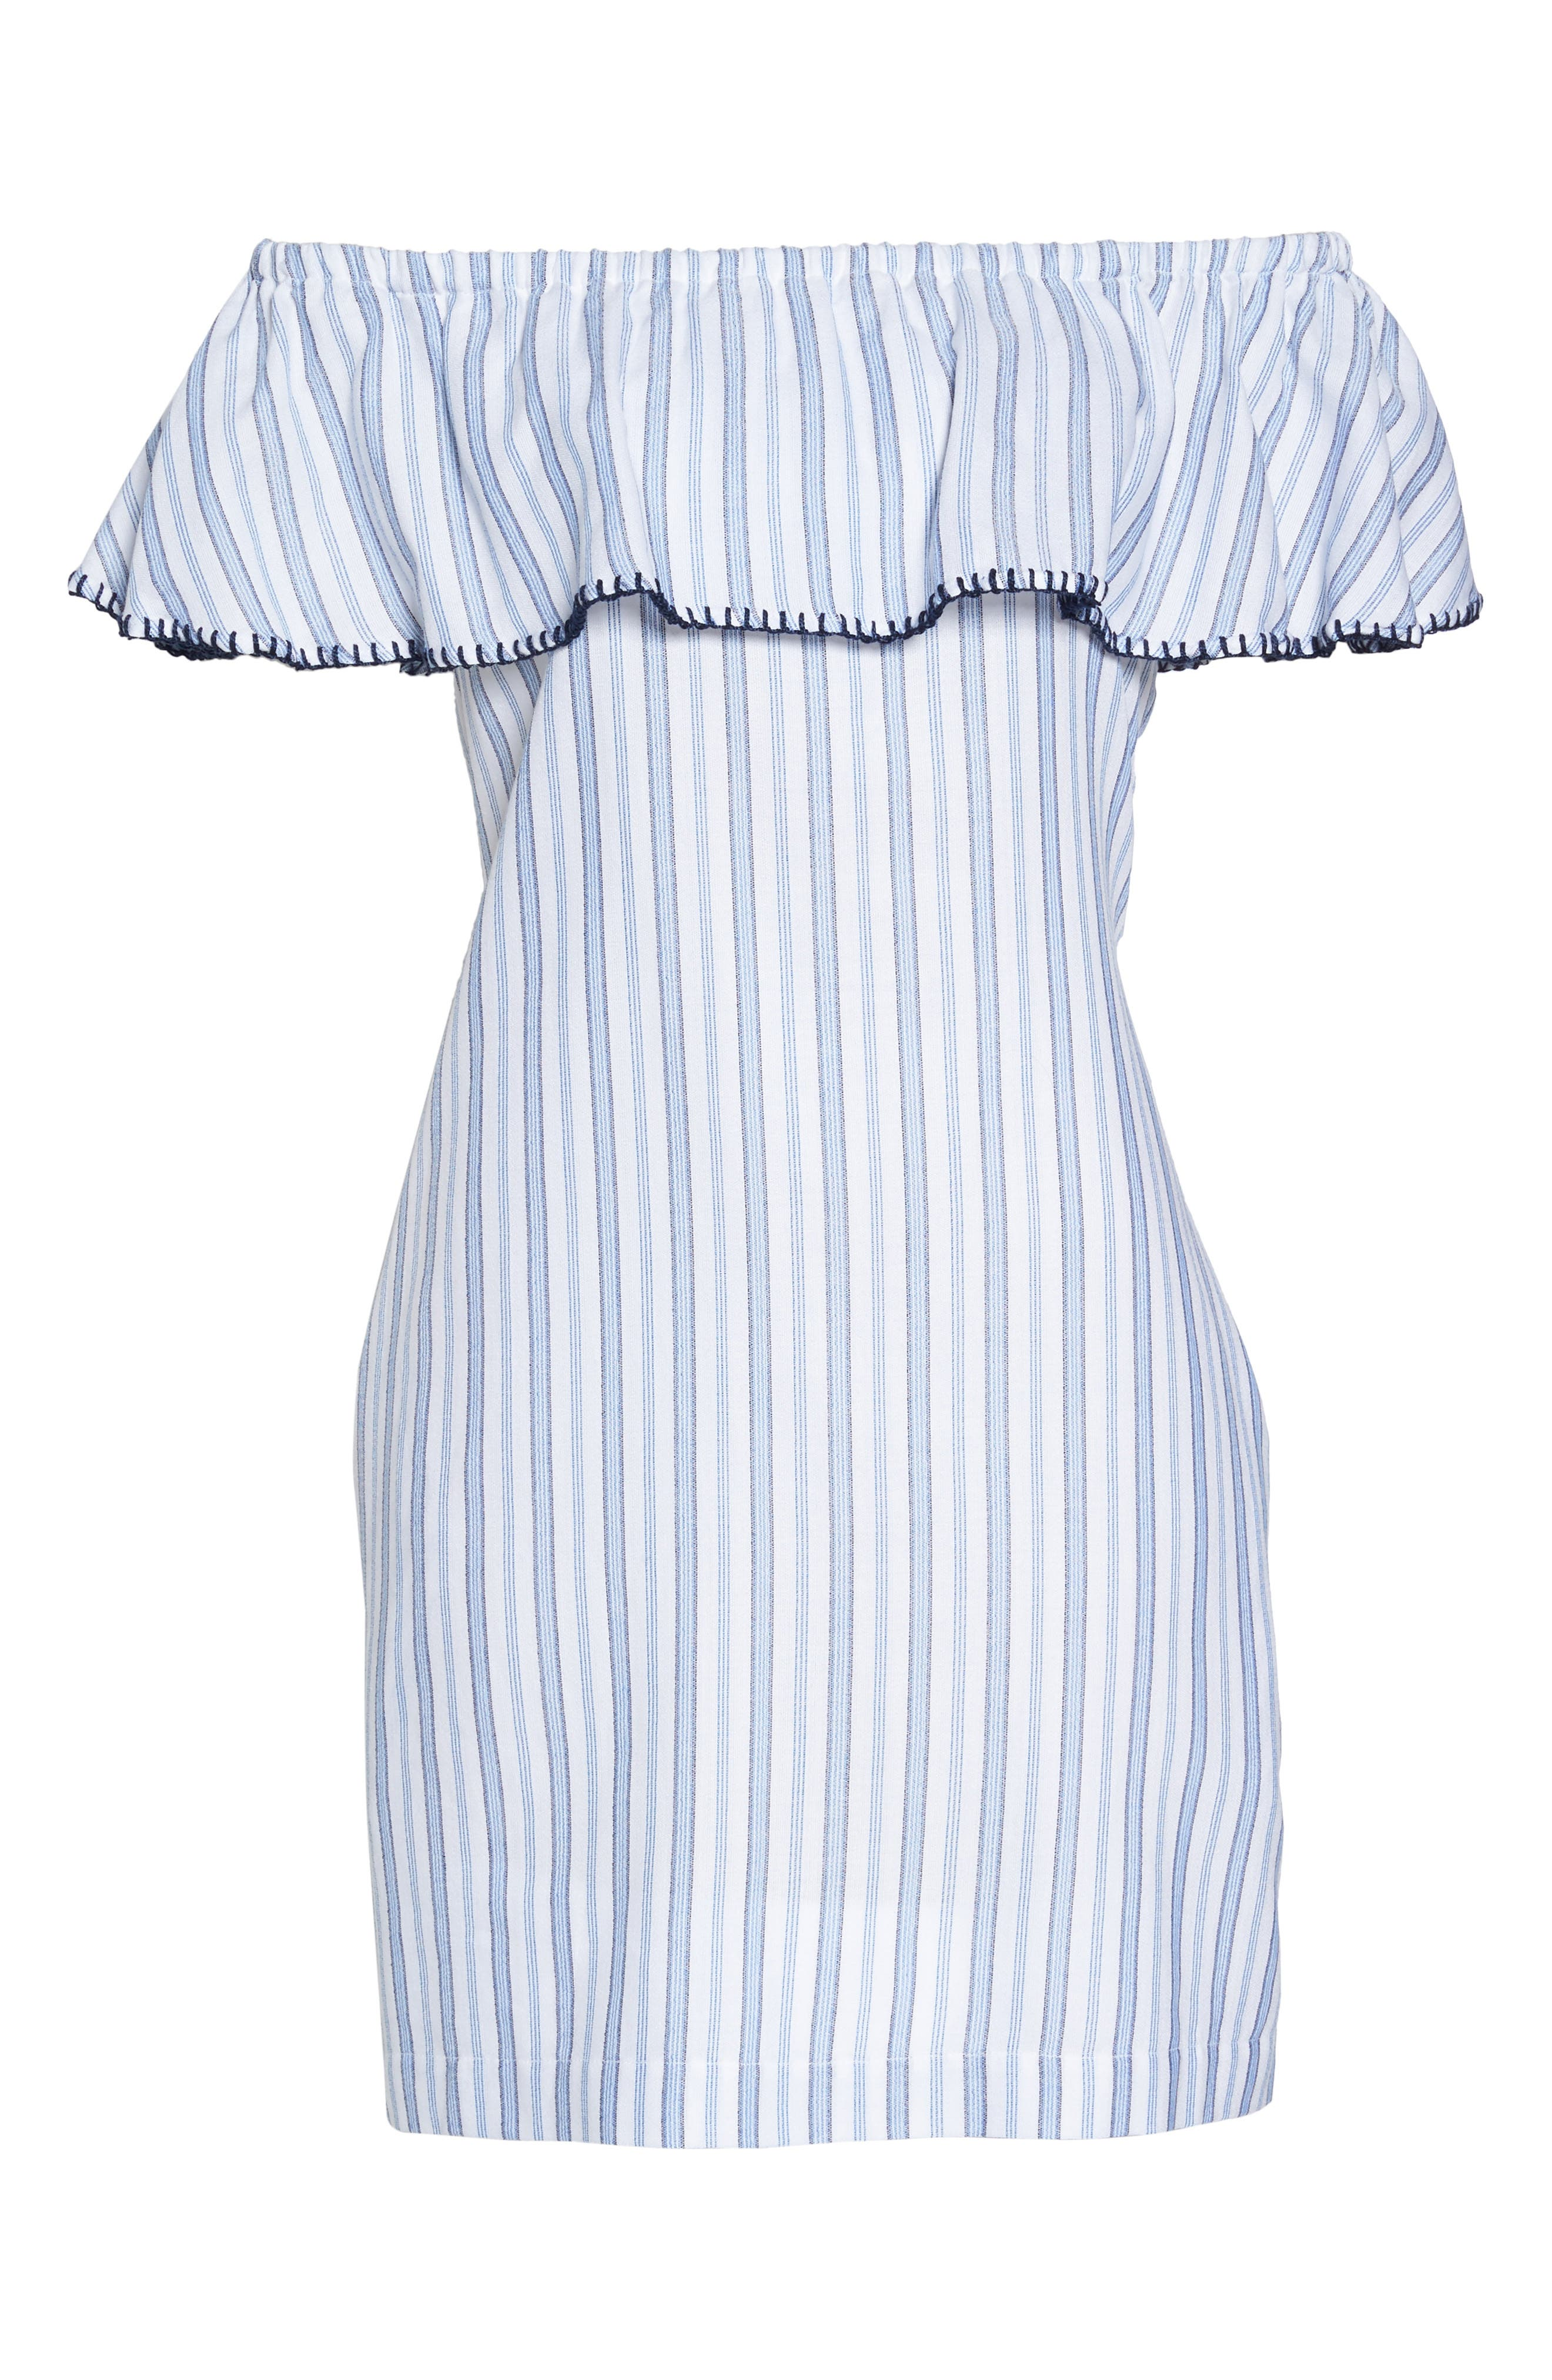 Ticking Stripe Off the Shoulder Cover-Up Dress,                             Alternate thumbnail 6, color,                             100